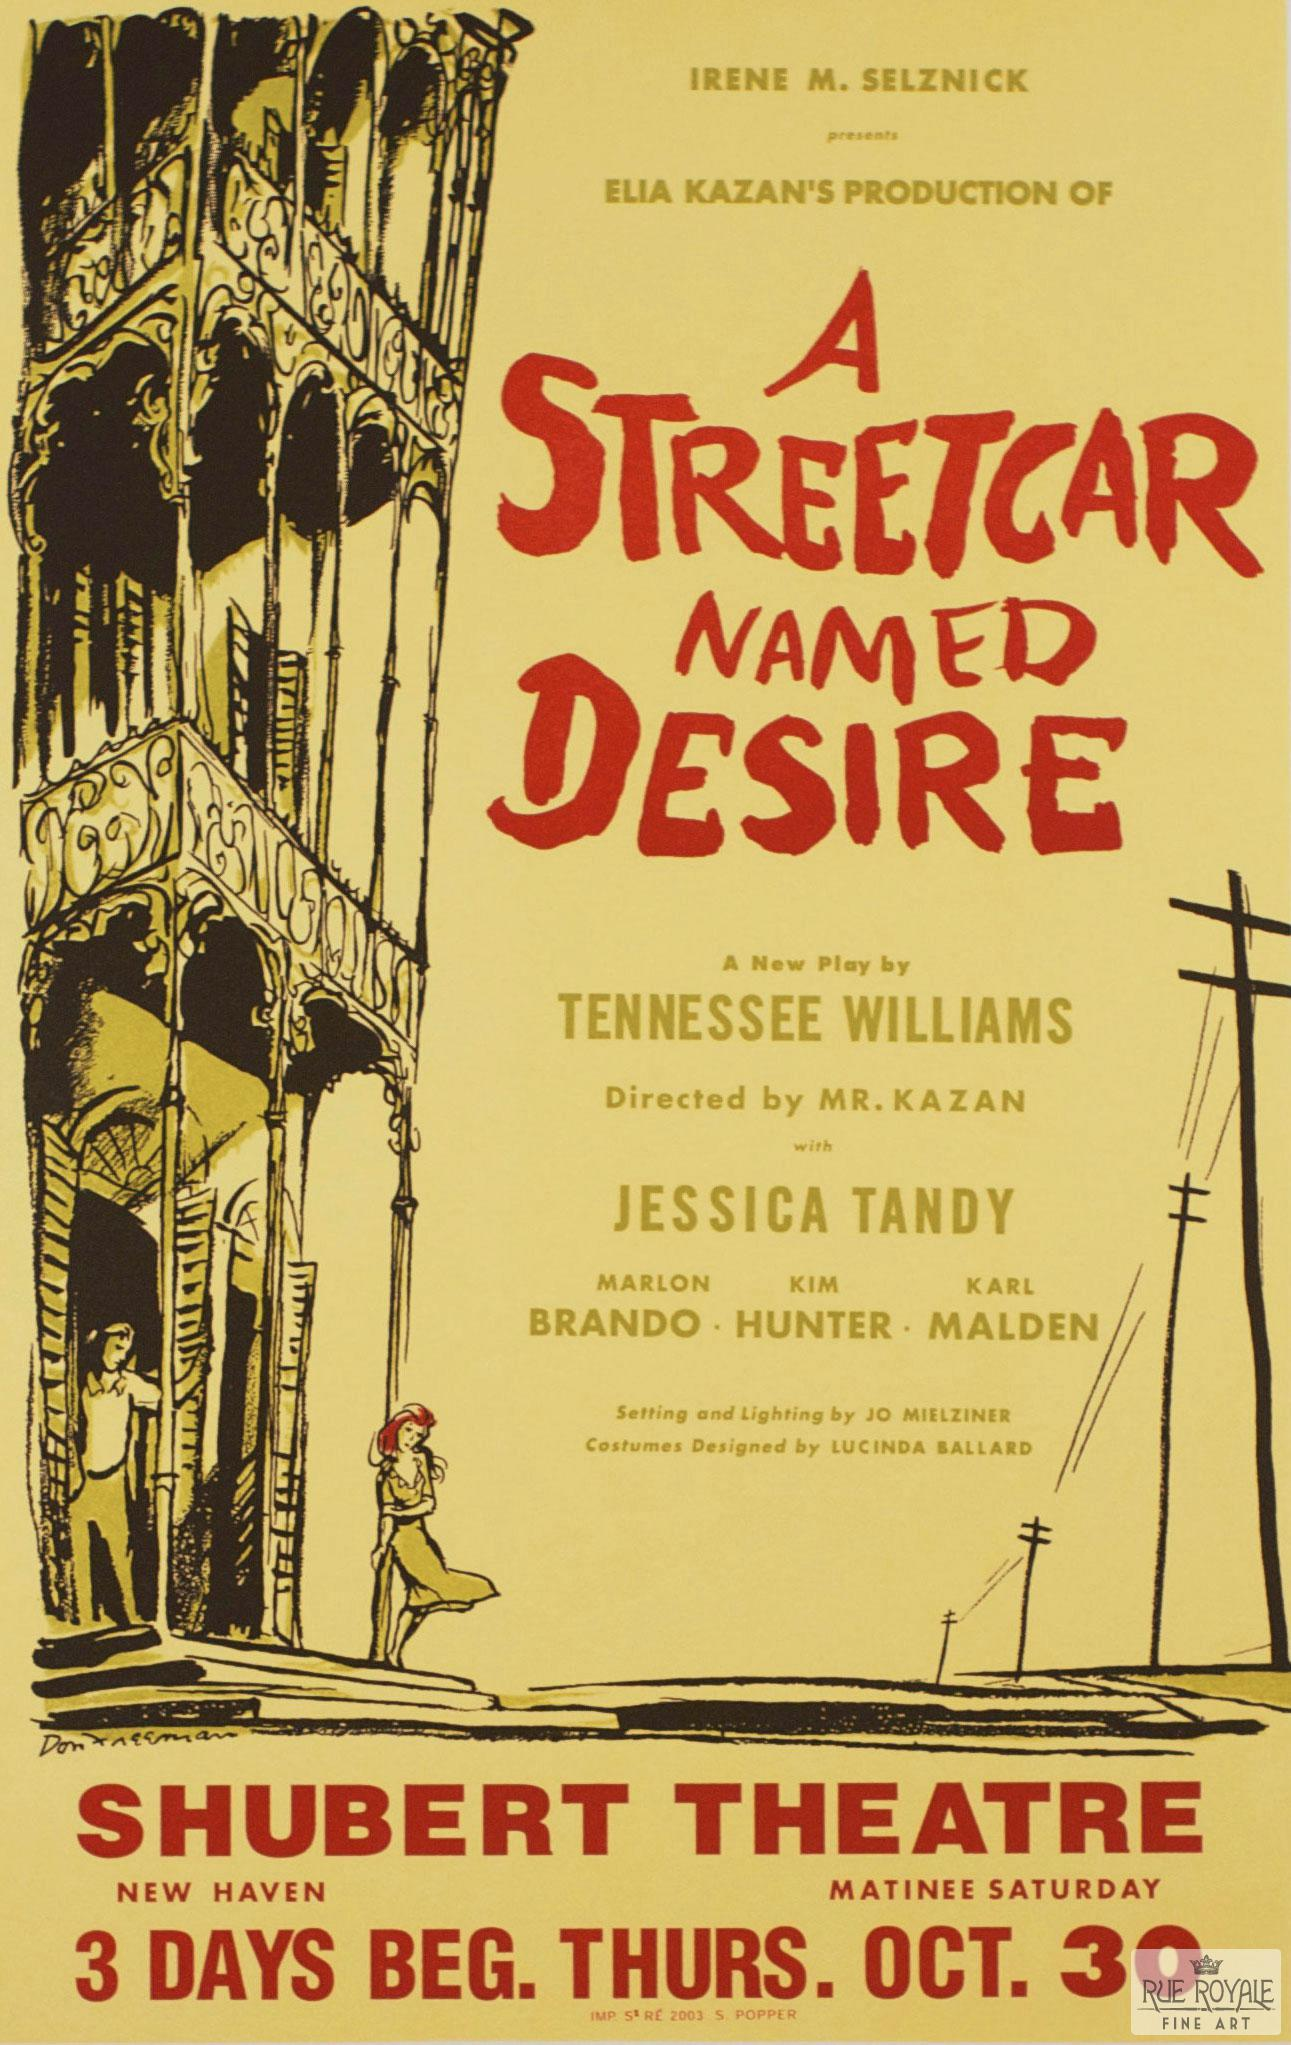 the street car named desire A streetcar named desire by tennessee williams and so it was i entered the broken world to trace the visionary company of love, its voice an instant in the wind (i know not whither hurled.